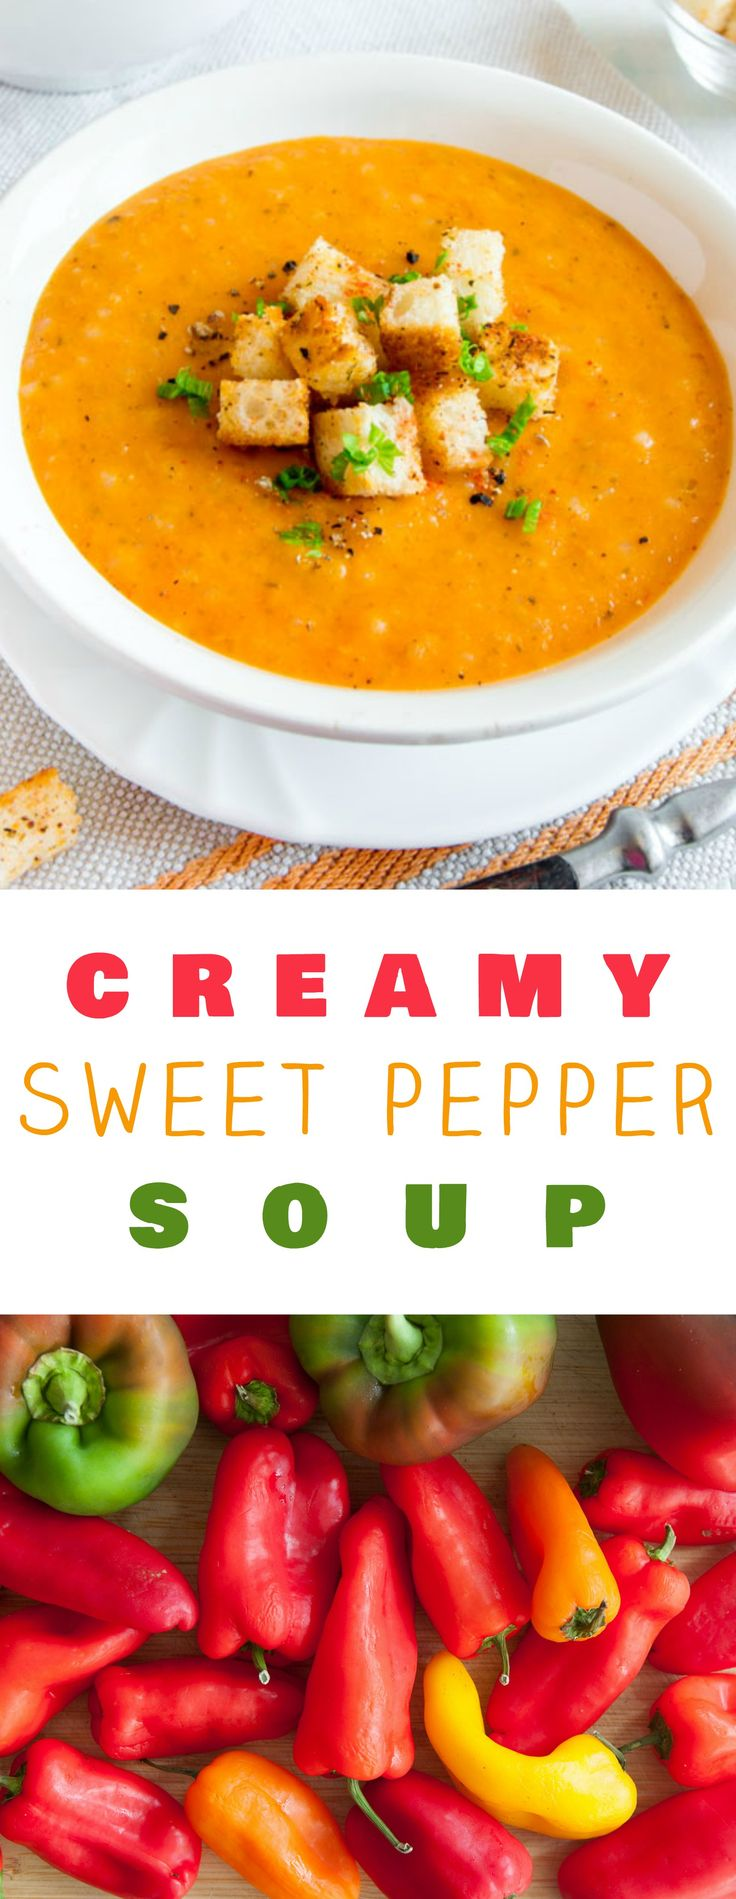 Creamy and Healthy Sweet Pepper Soup! Delicious sweet peppers are combined with chicken broth and rice to make it a dinner time favorite!  This gluten-free recipe is easy to make and can easily be turned vegetarian by using vegetable broth.  This is the p